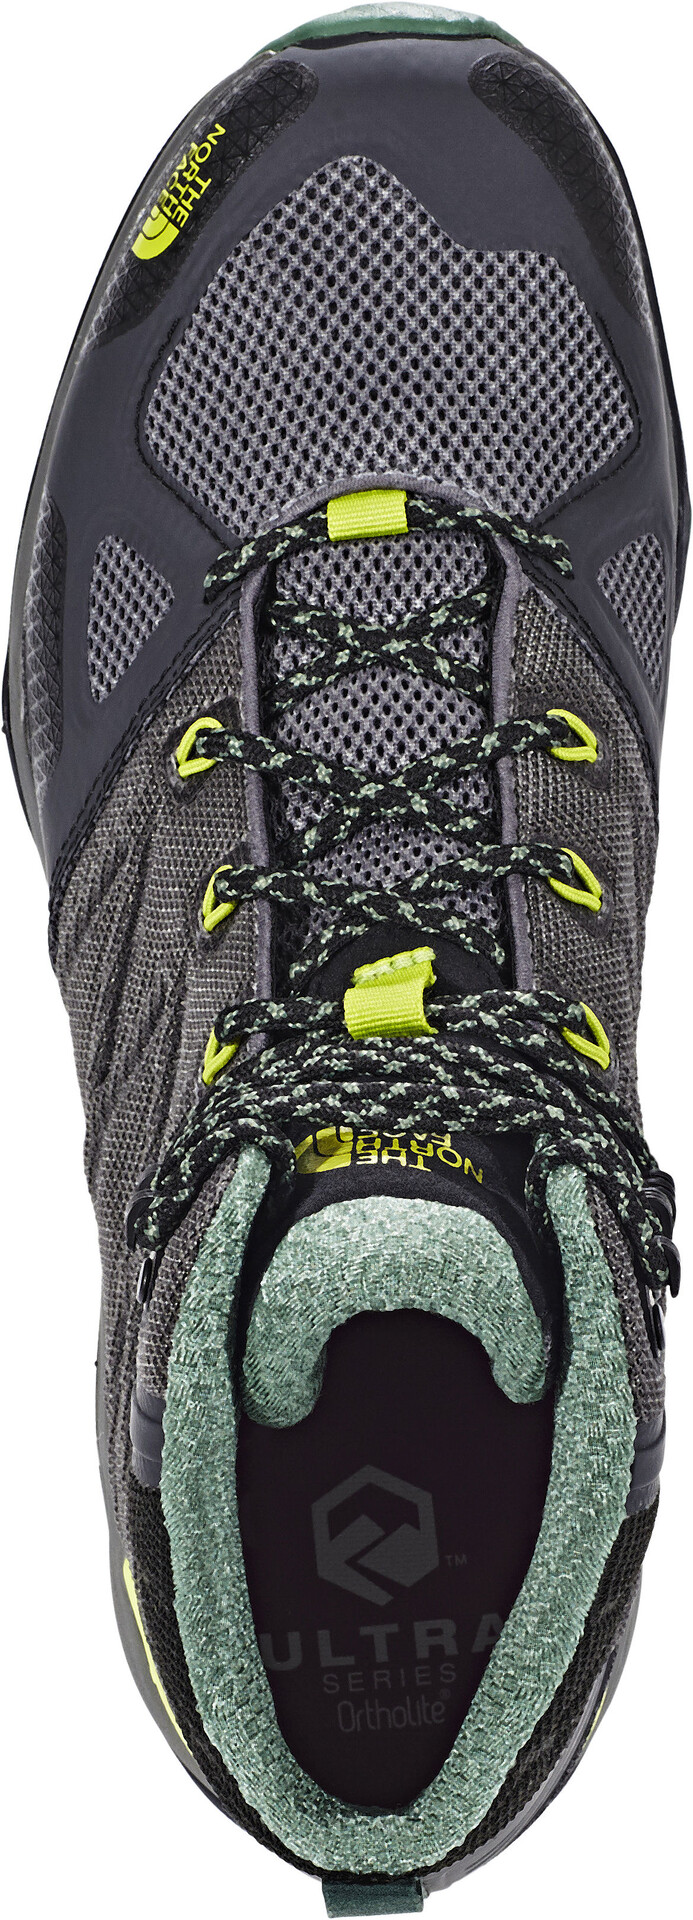 Ultra Mid Green Fastpack The Gtx Shoes Phantom North Greylime Face Herren Ii 7v6yfbgY